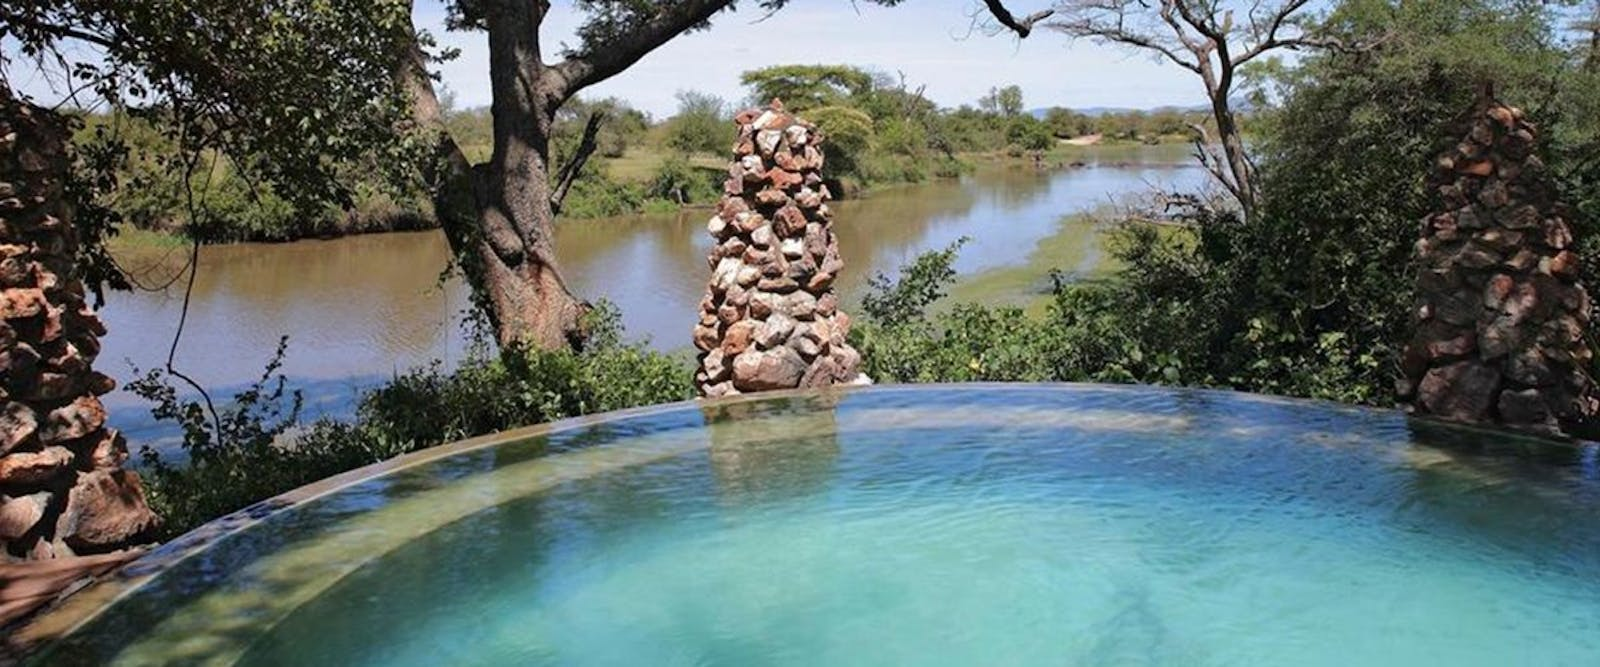 Pool area at &Beyond Grumeti Serengeti Tented Camp